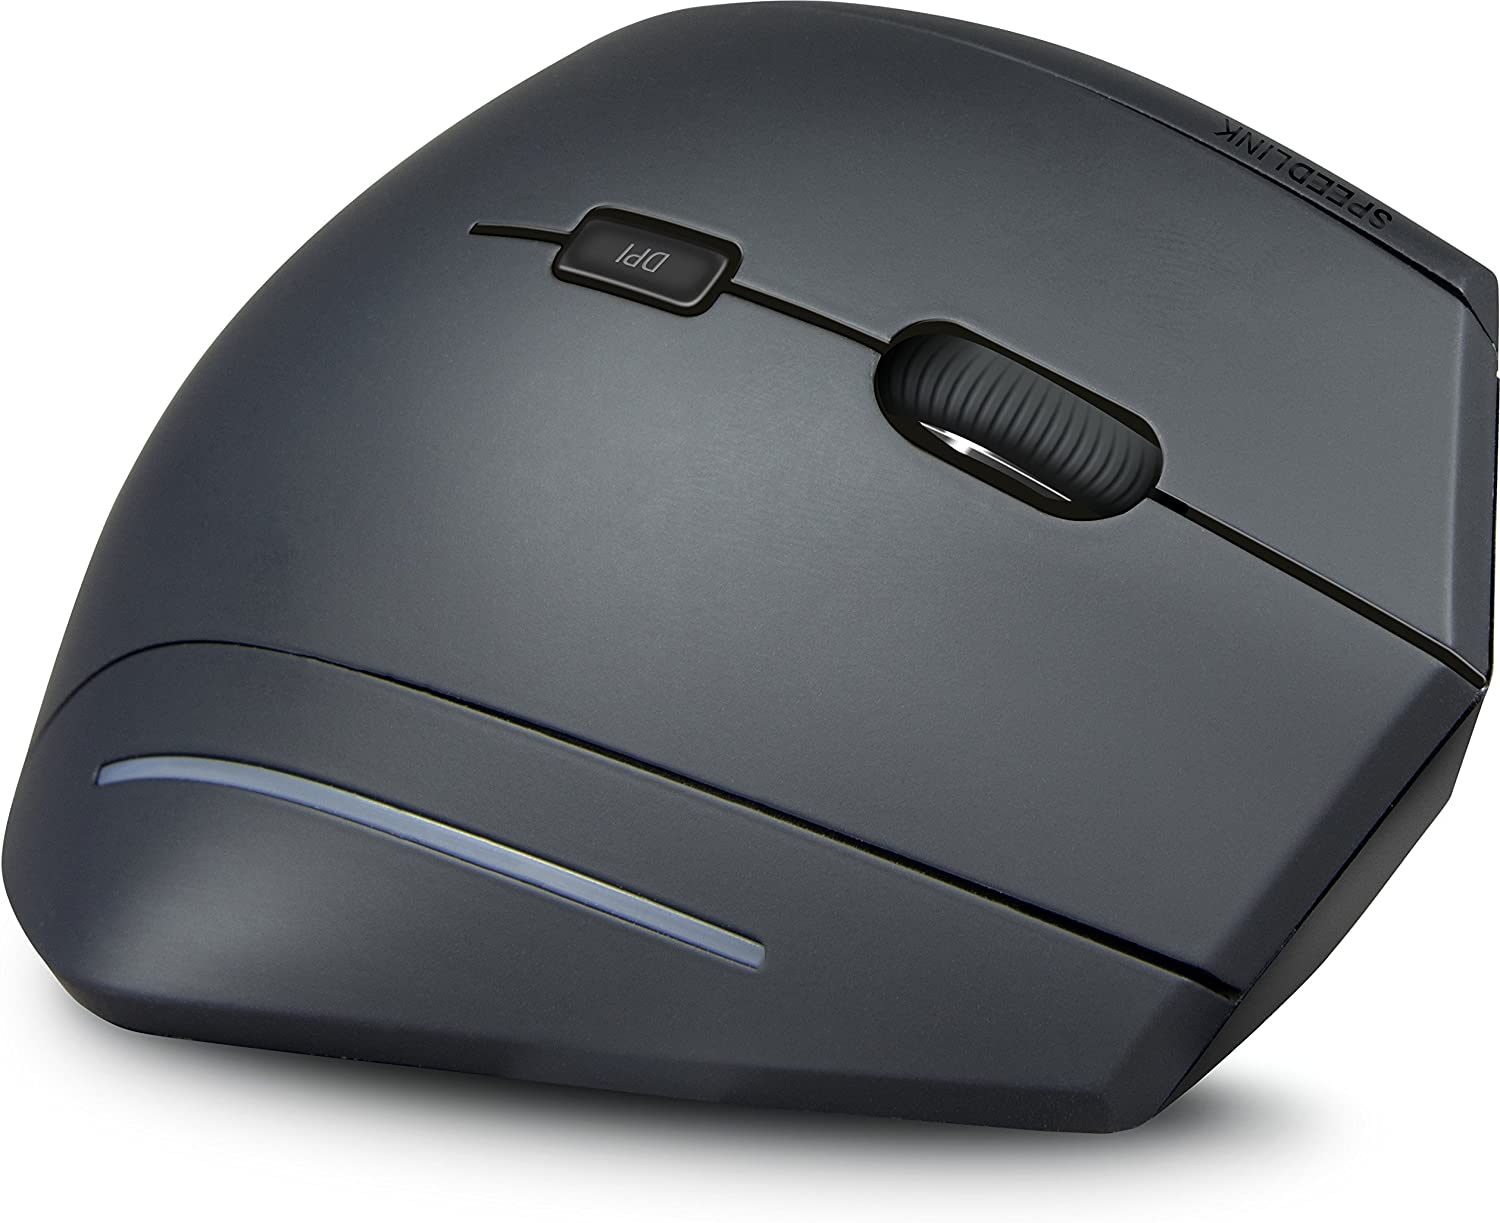 Speedlink Manejo Vertical Wireless USB Mouse - Joint-Friendly and Ergonomic for PC/Notebook/Laptop, Black